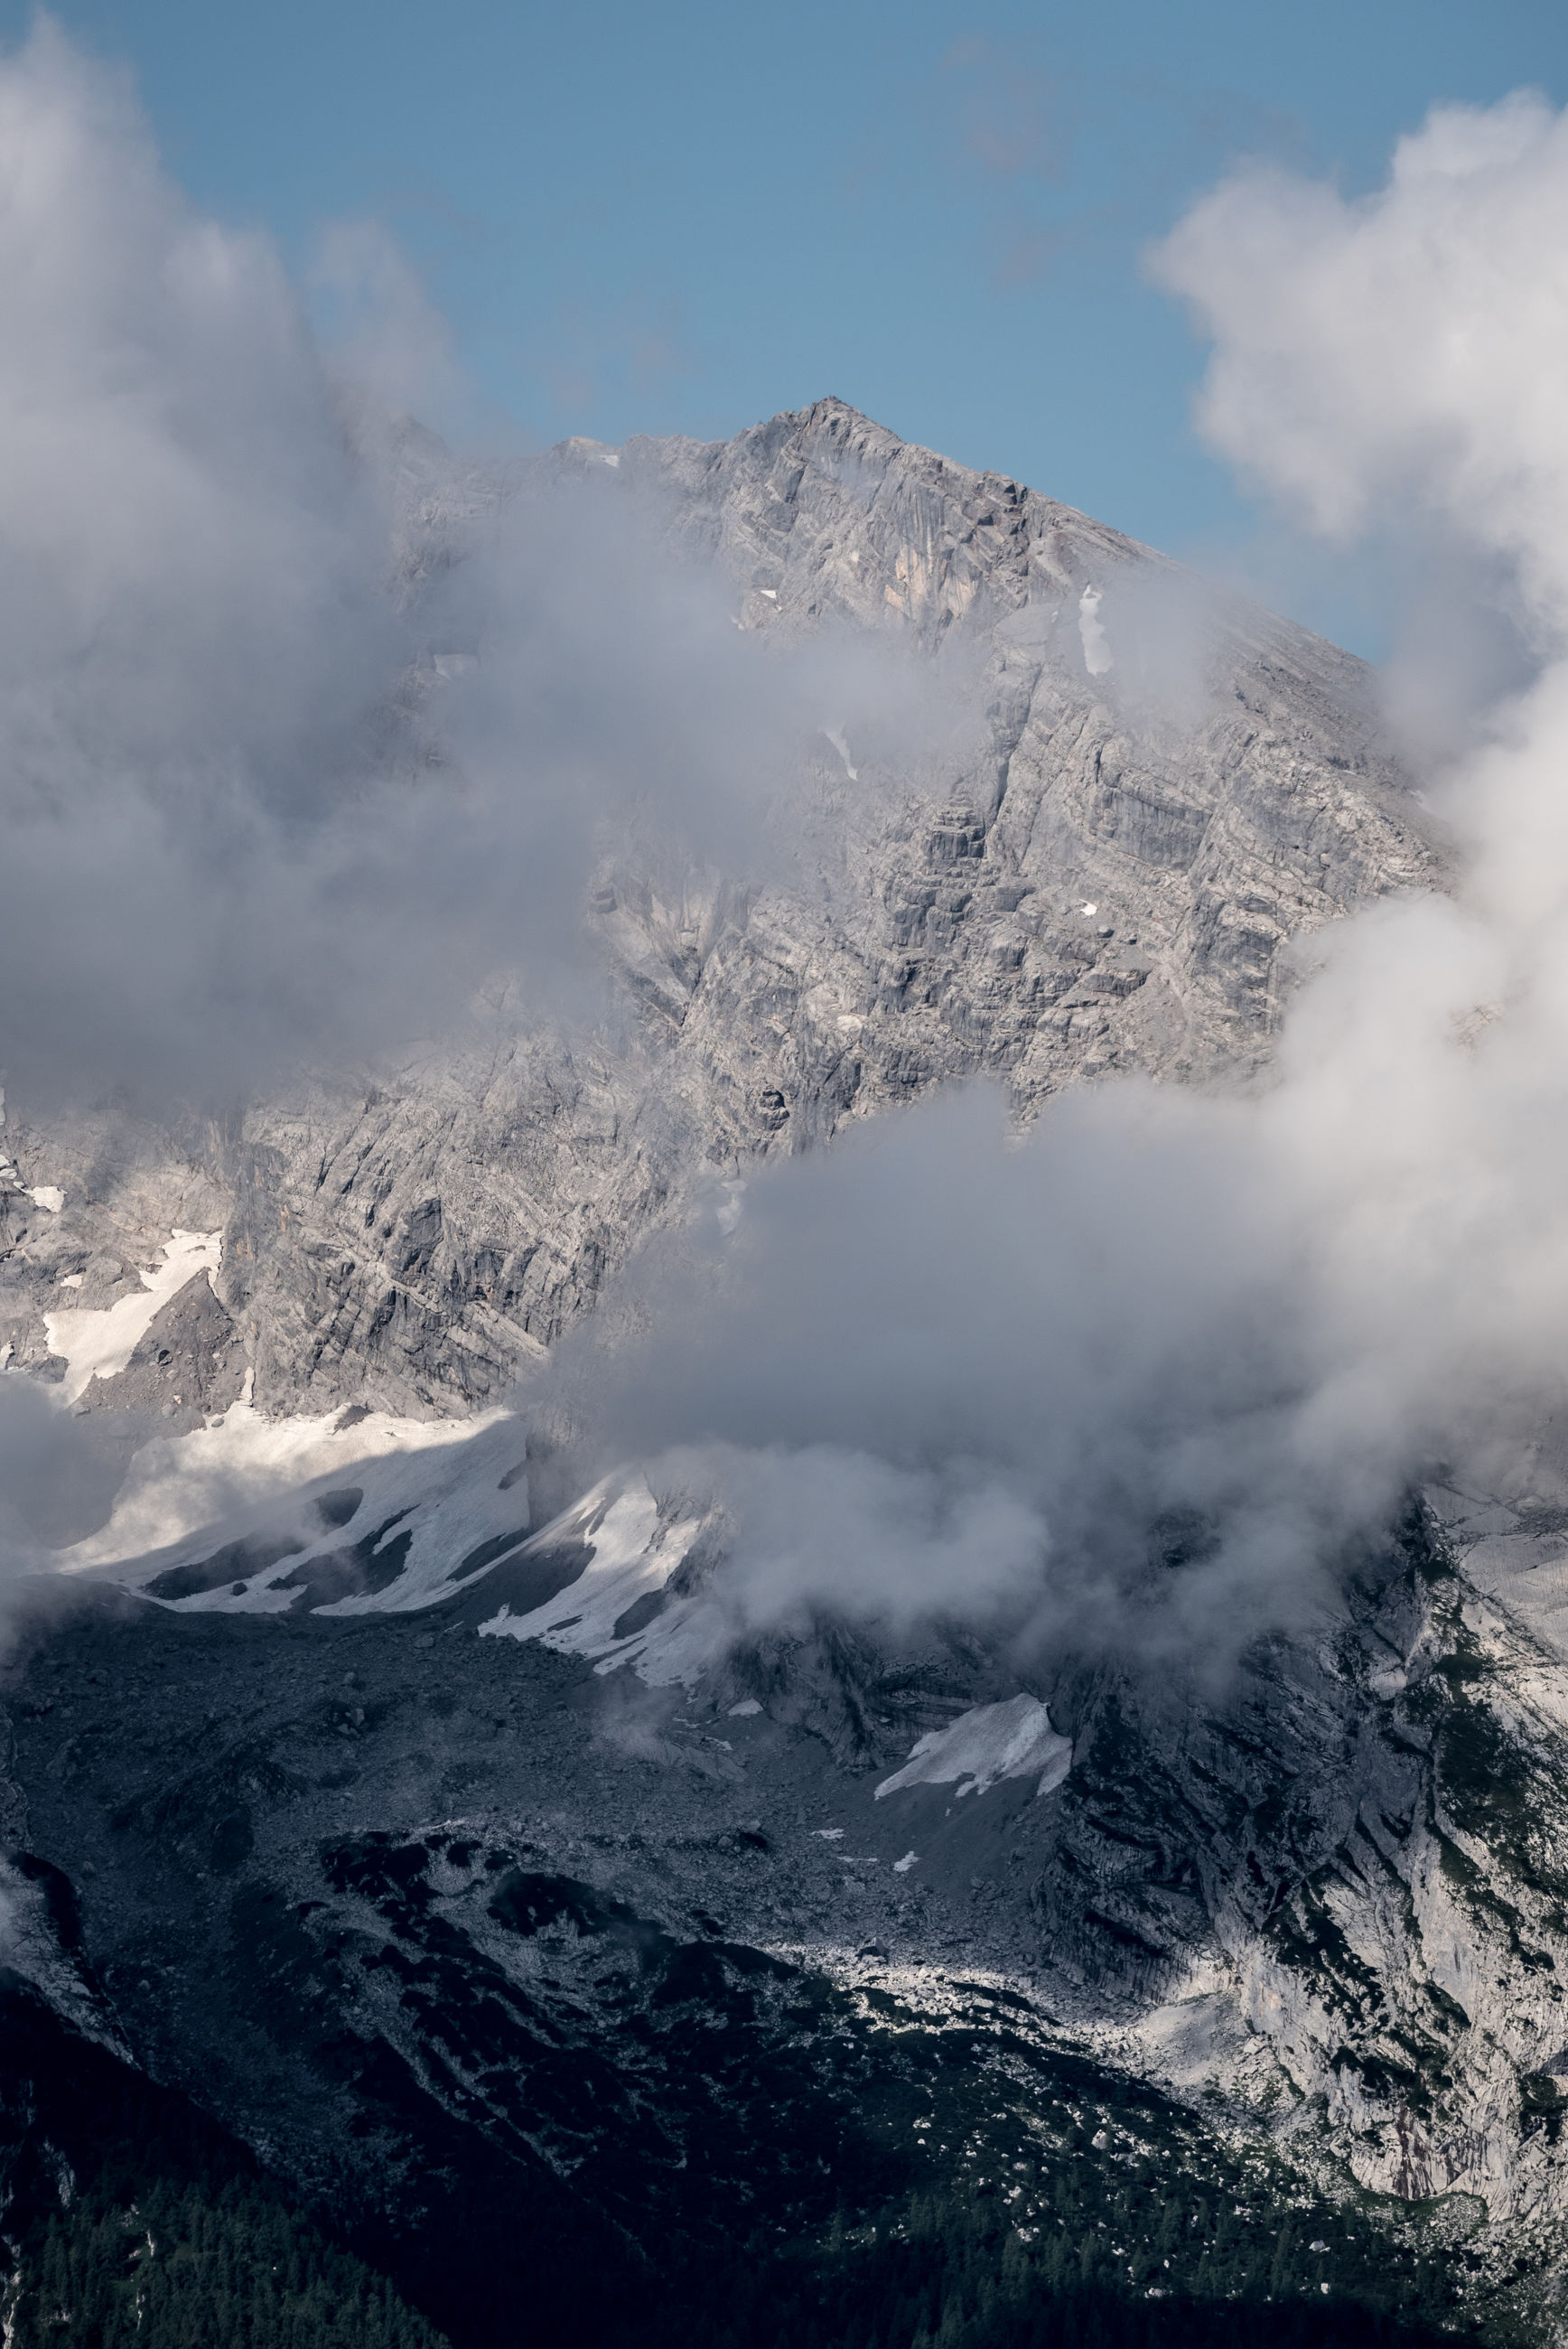 AERIAL VIEW OF SNOW COVERED MOUNTAIN AGAINST SKY